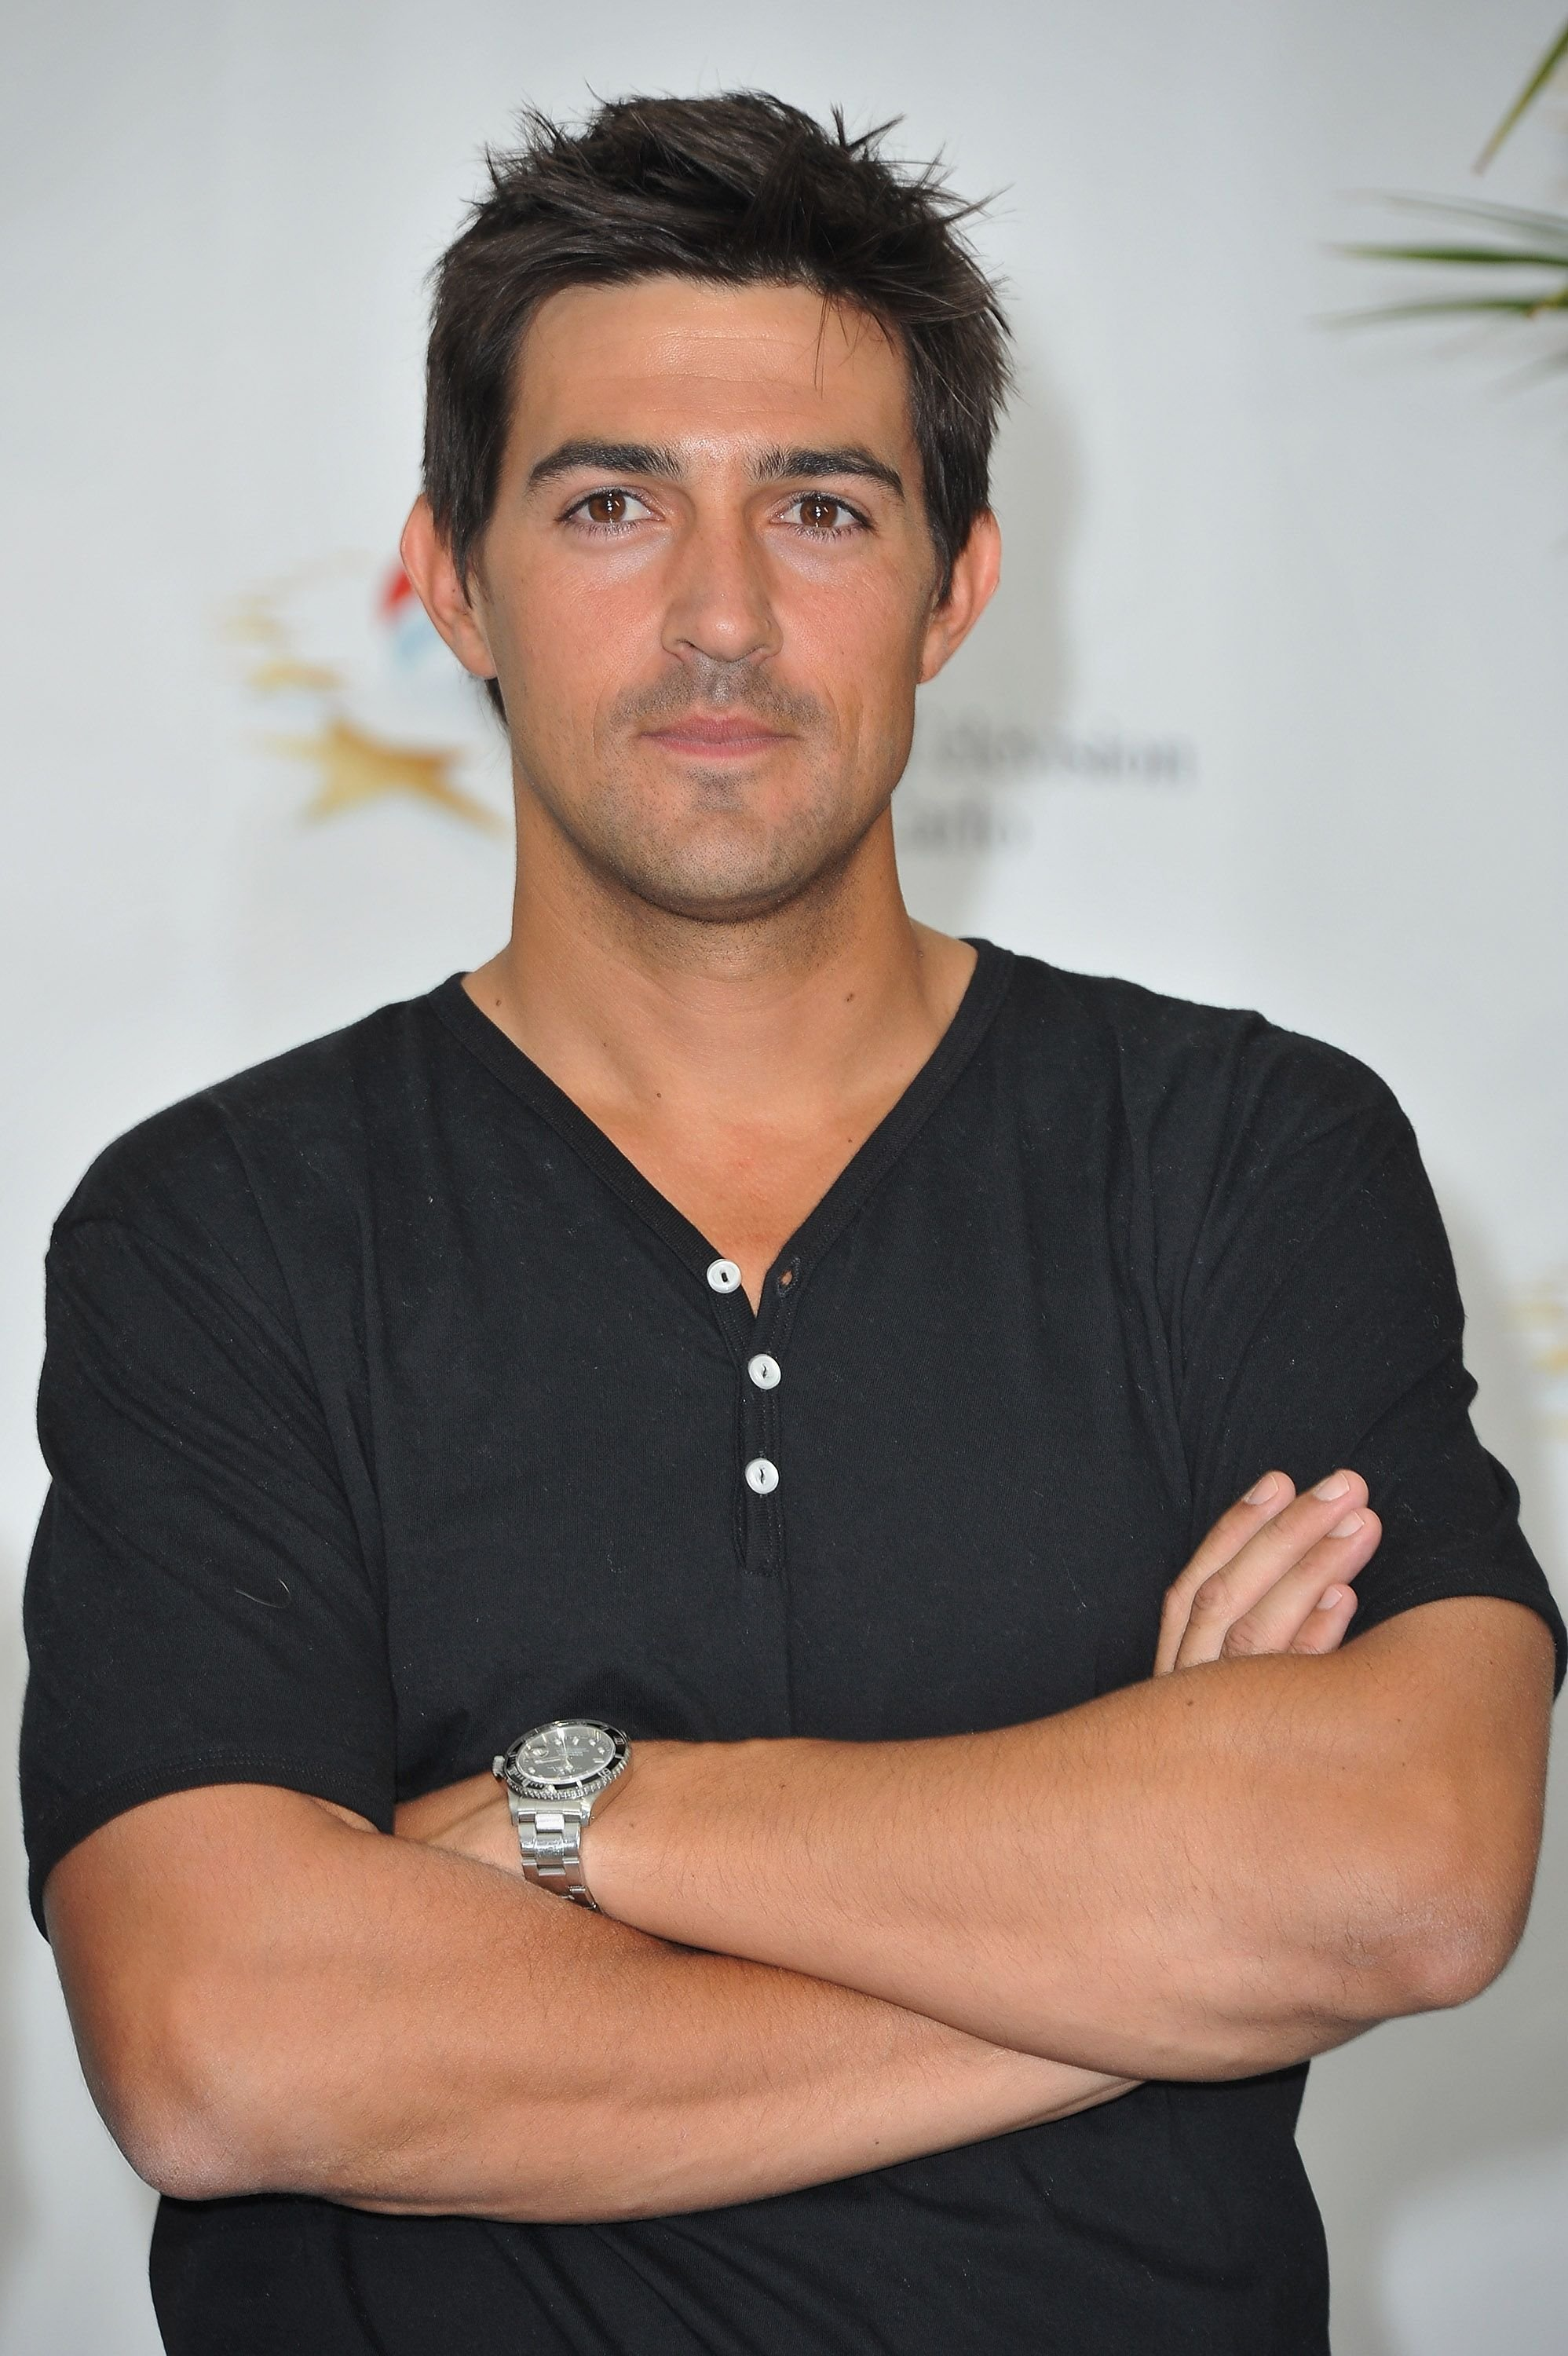 Jean-Pascal Lacoste au Grimaldi Forum le 7 juin 2011 à Monte-Carlo, Monaco. | Photo : Getty Images